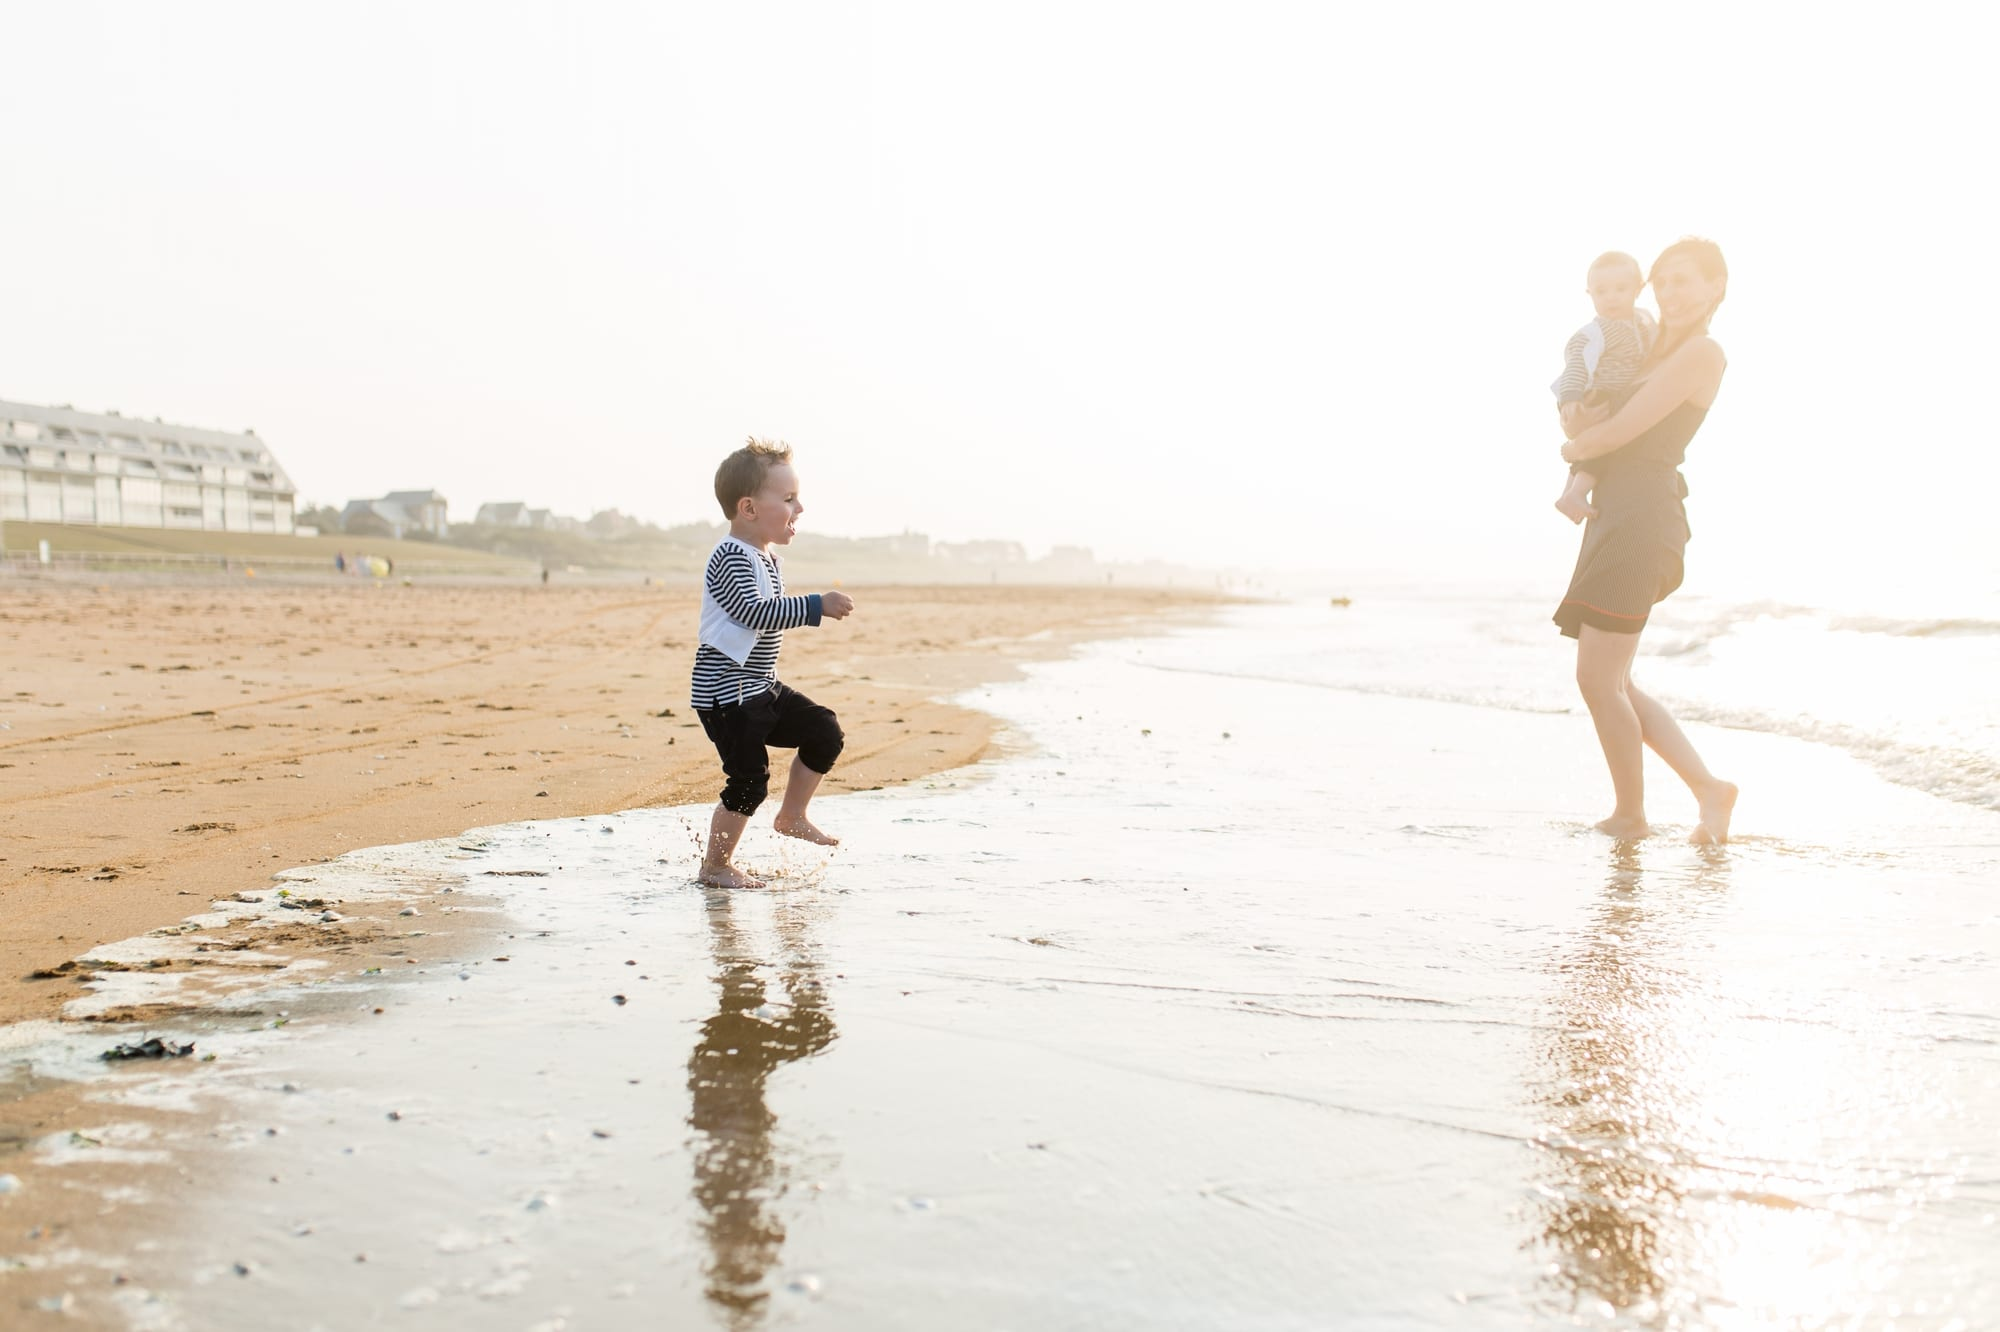 séance famille cabourg basse normandie photographe shooting lifestyle-14